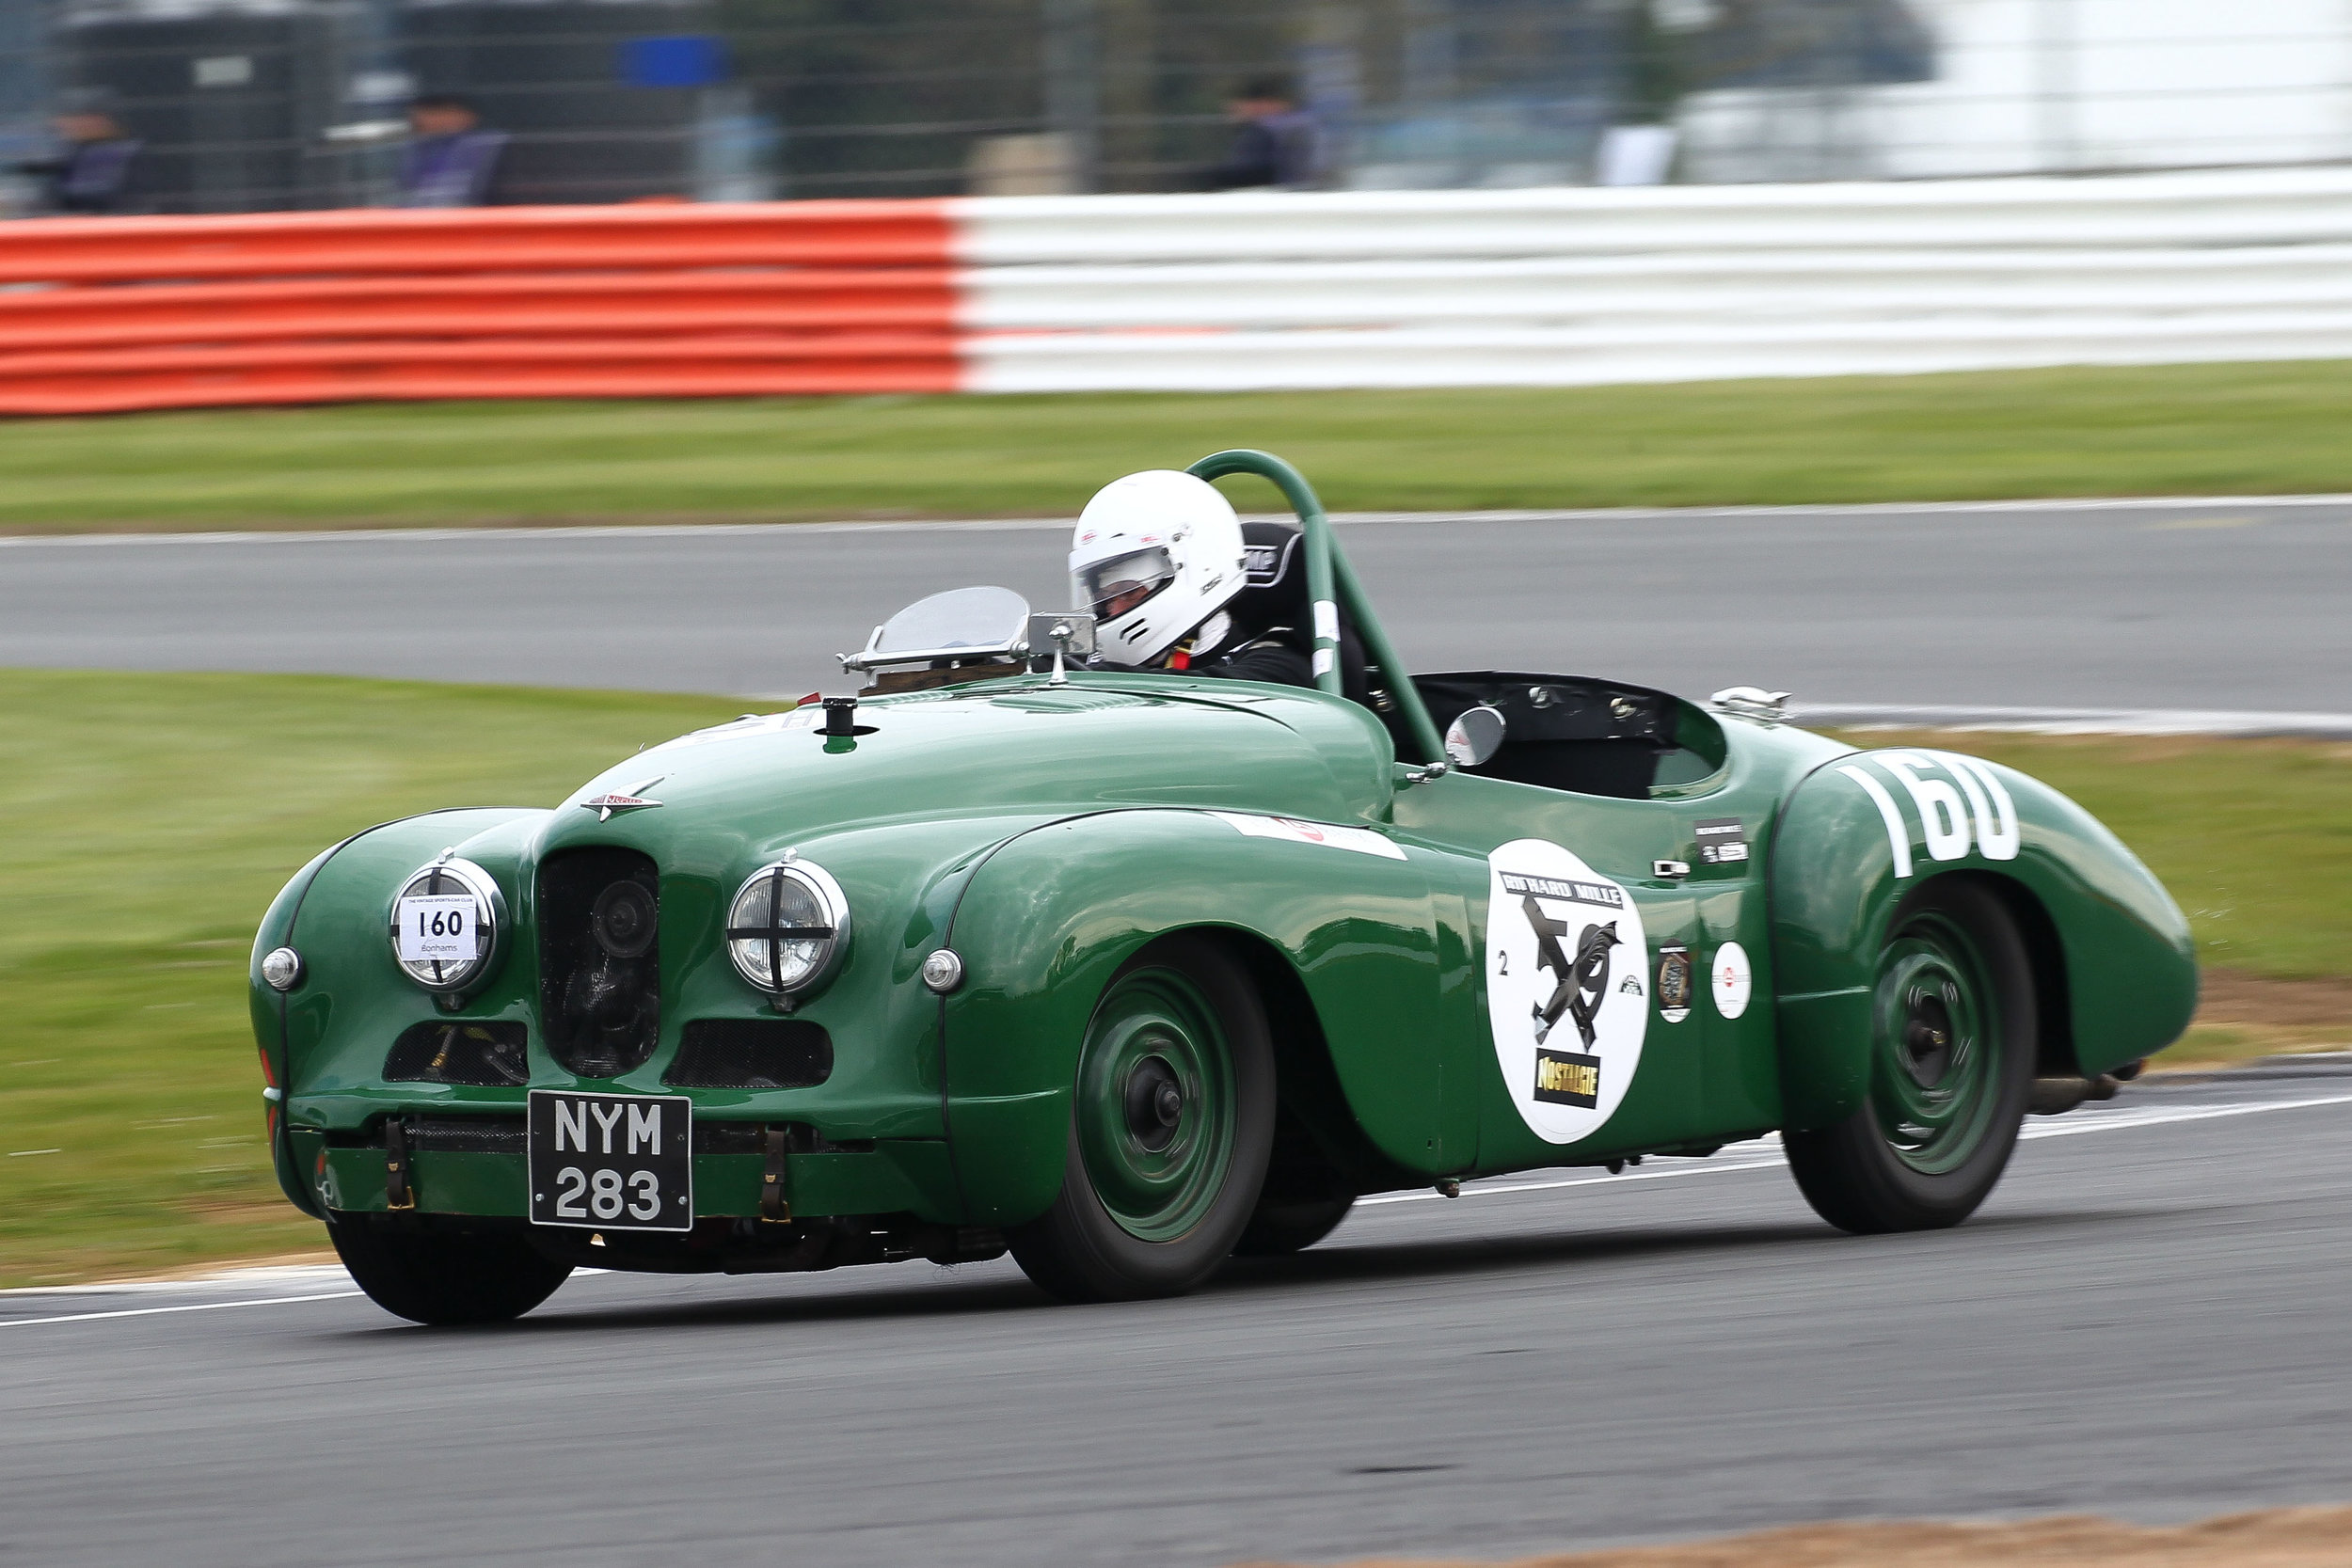 Against expectation, and delightfully, the Jowett Jupiter of Harry Naerger made it to the startline and in the race, improved on his qualifying time by 10 seconds  Photo - Richard Styles